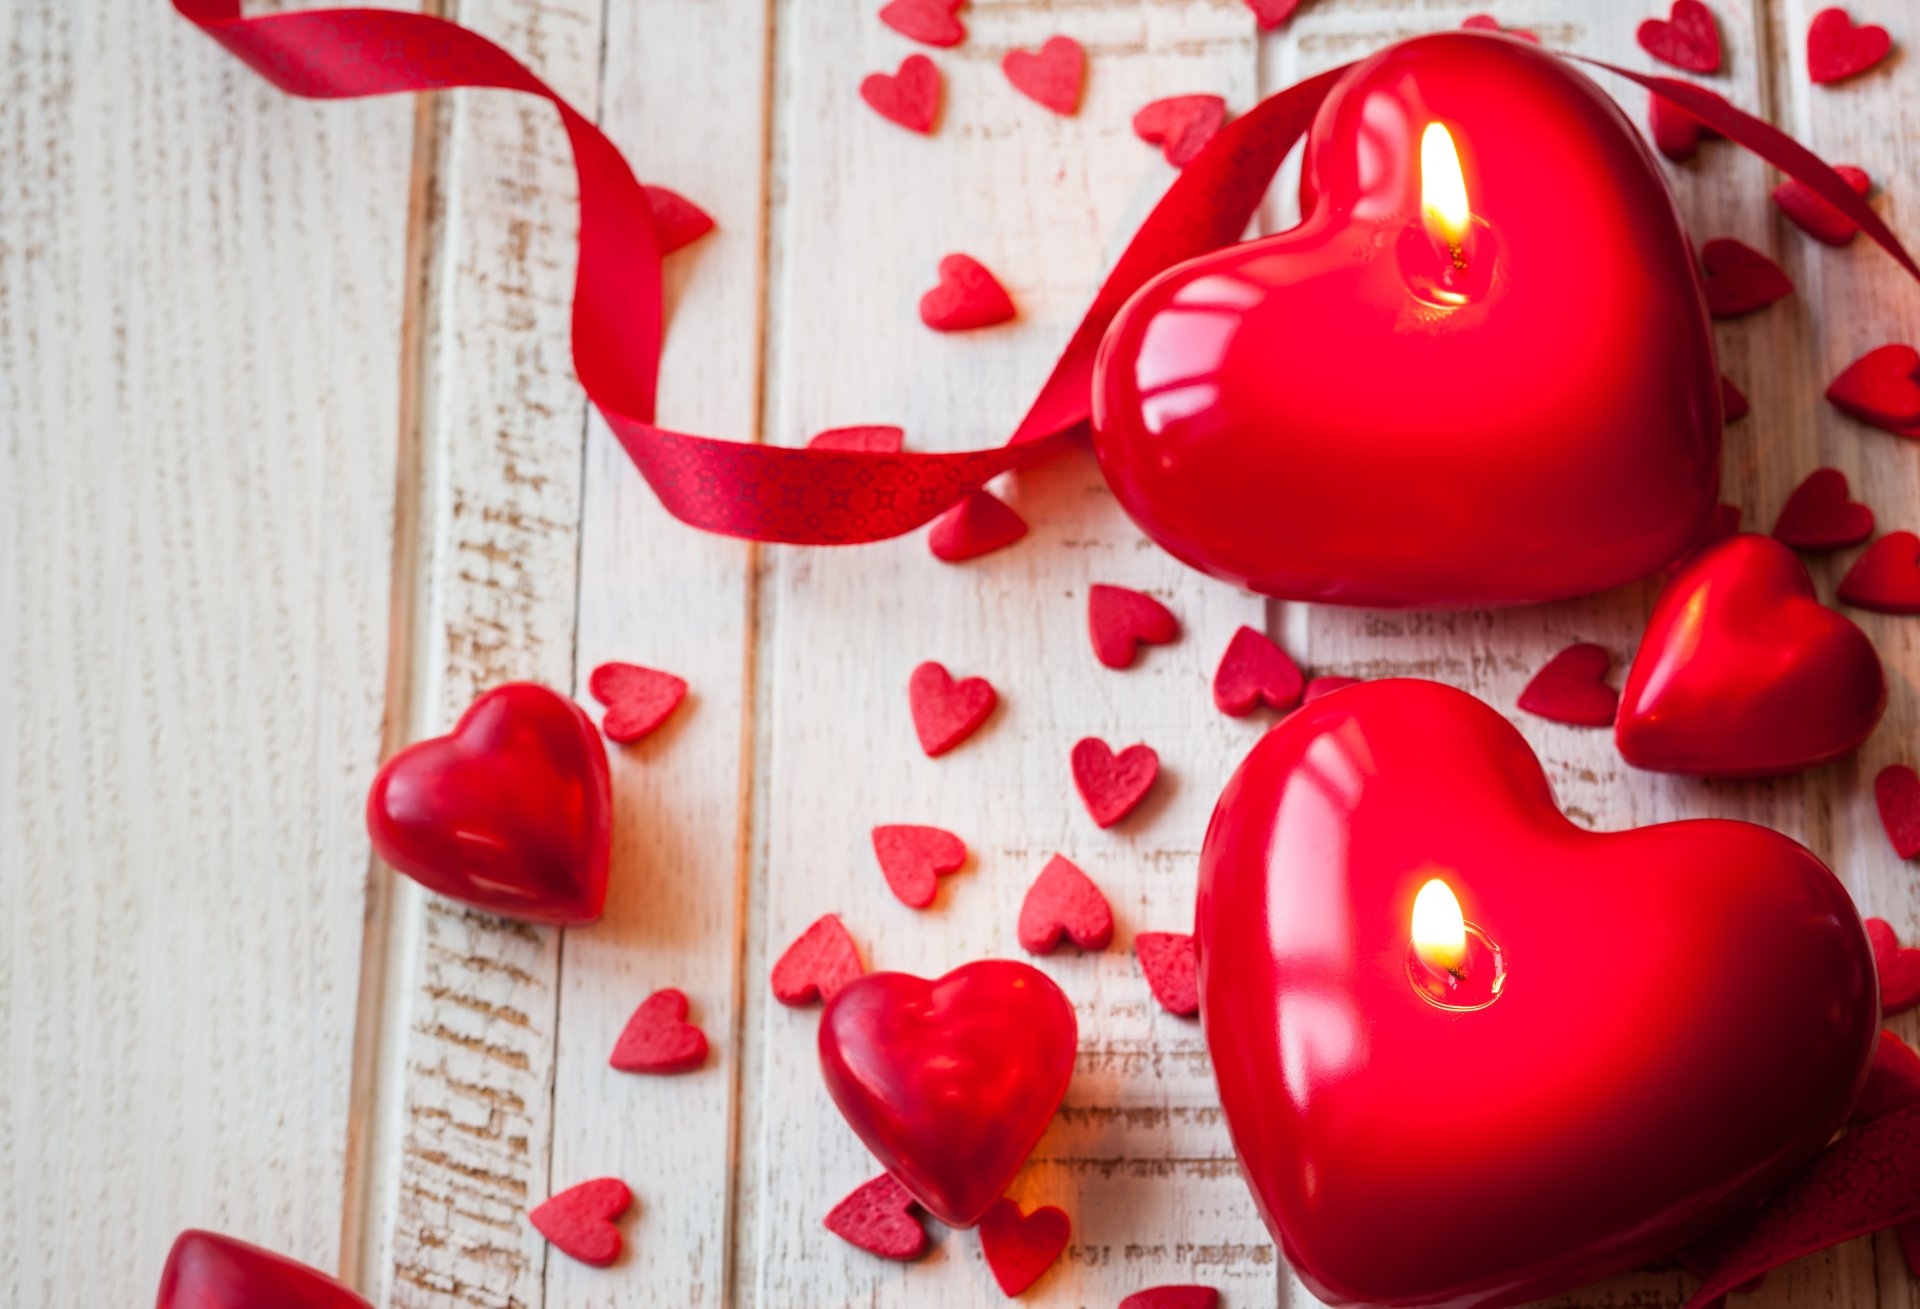 Holiday - Valentine's Day  Heart Candle Romantic Wallpaper